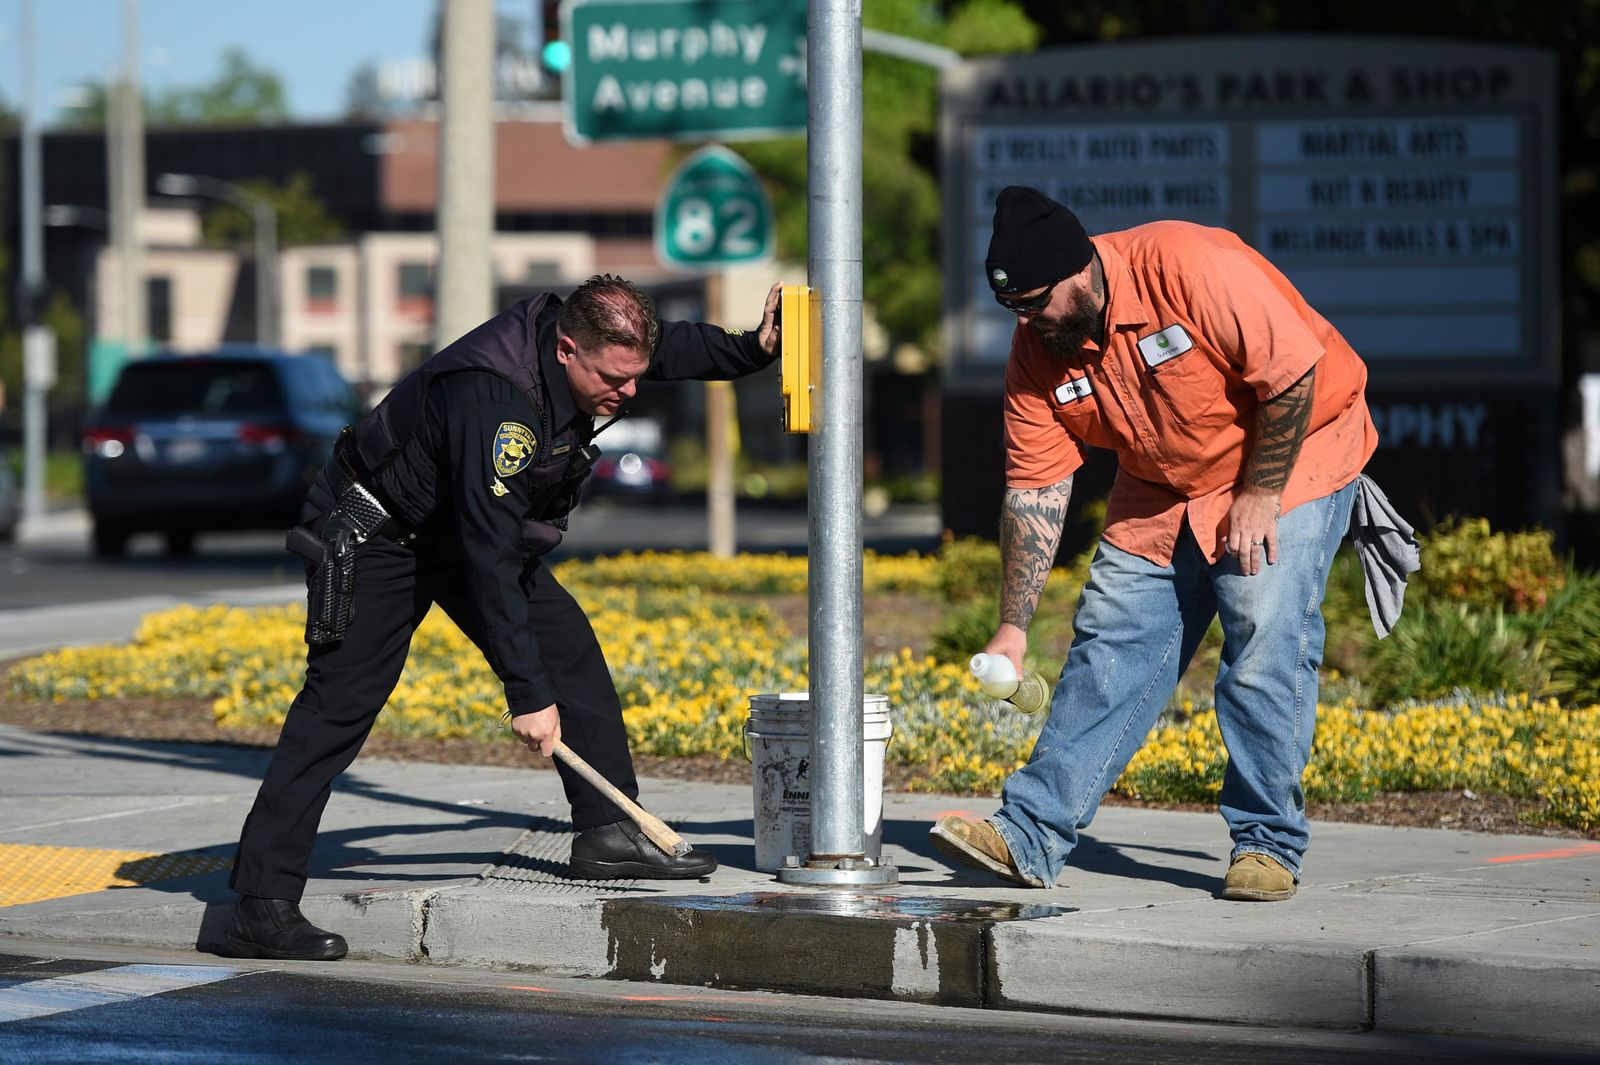 Police and road crews work to clean up the scene after a car crash at the intersection of El Camino Real and Sunnyvale Road in Sunnyvale, Calif., on Wednesday, April 24, 2019. Investigators are working to determine the cause of the crash in Northern California that injured several pedestrians on Tuesday evening. Authorities say the driver of the car was taken into custody after he appeared to deliberately plow into the group. (AP Photo/Cody Glenn)